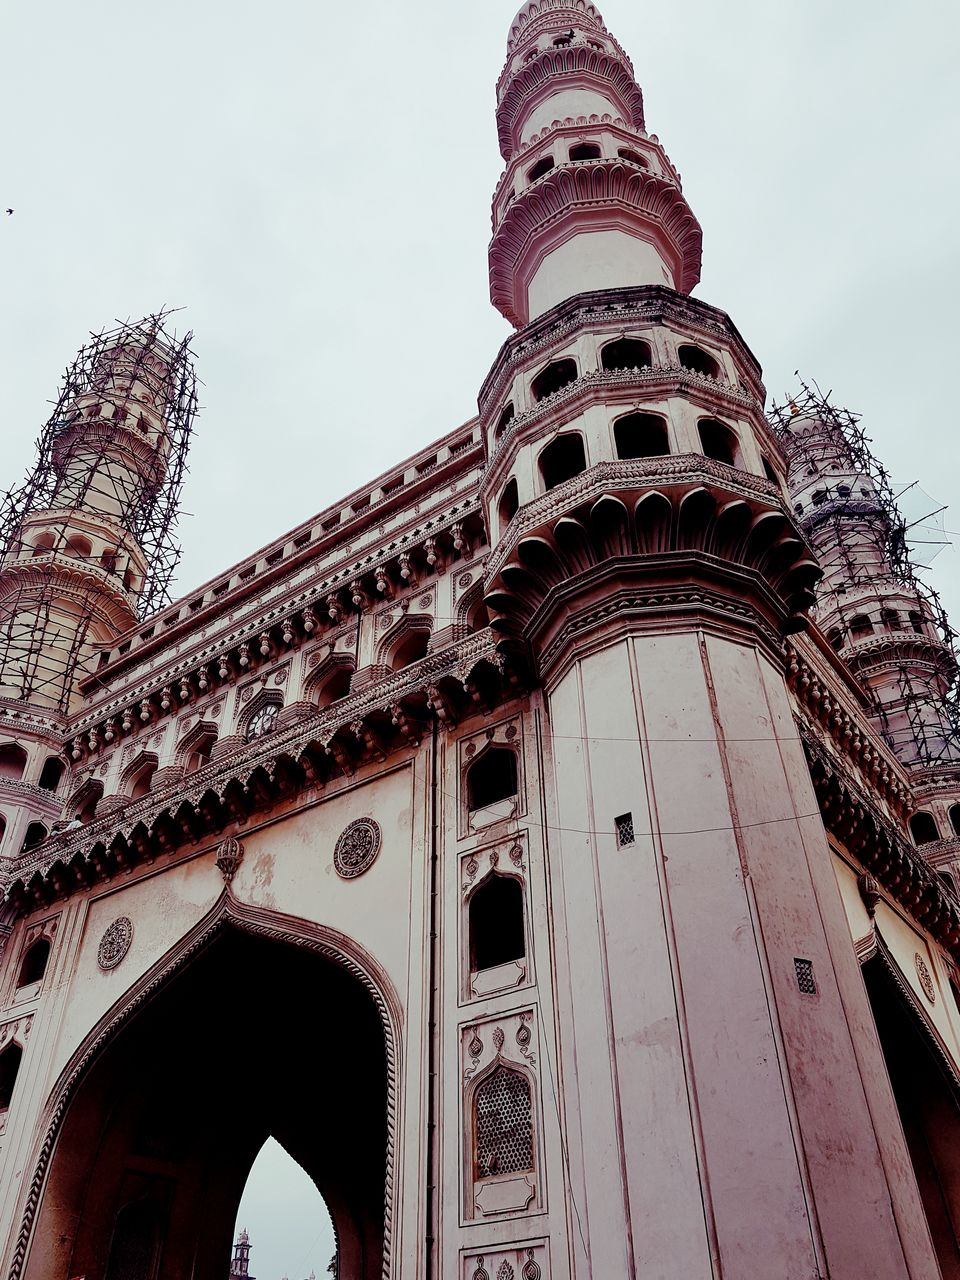 Charminar stands tall in the crowded streets